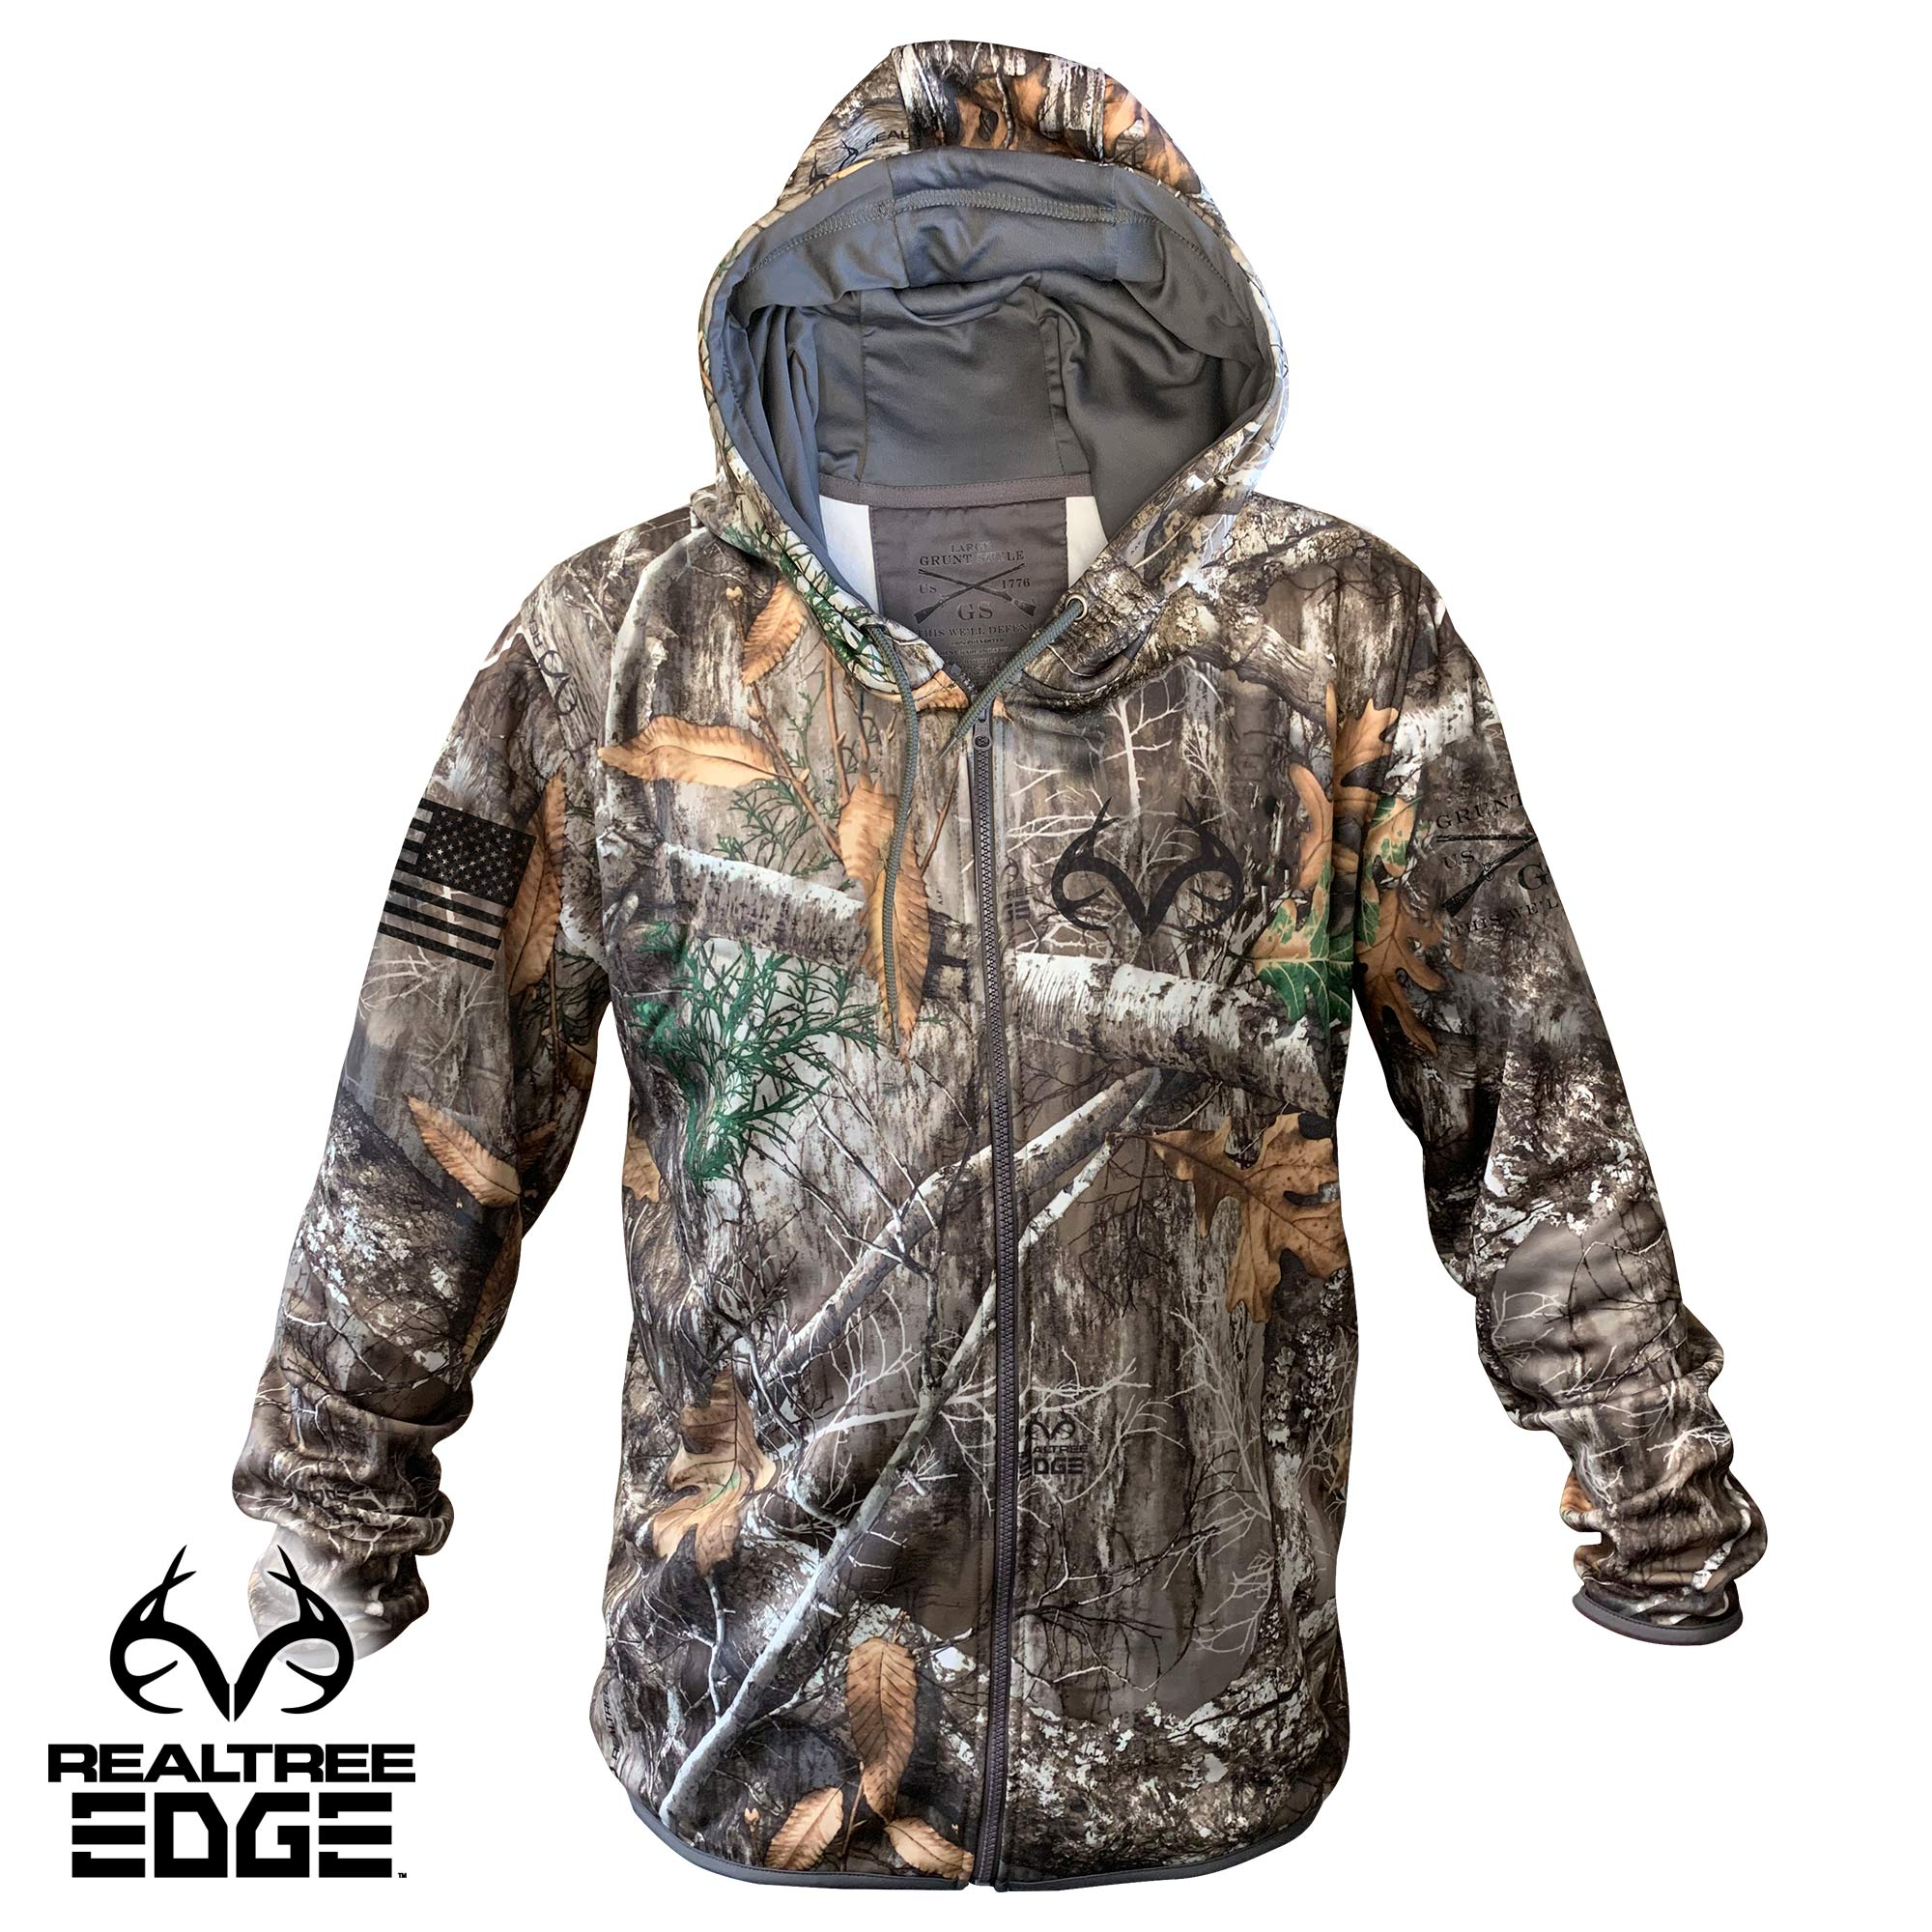 Realtree Edge Full-Zip Hoodie - Simple Logo